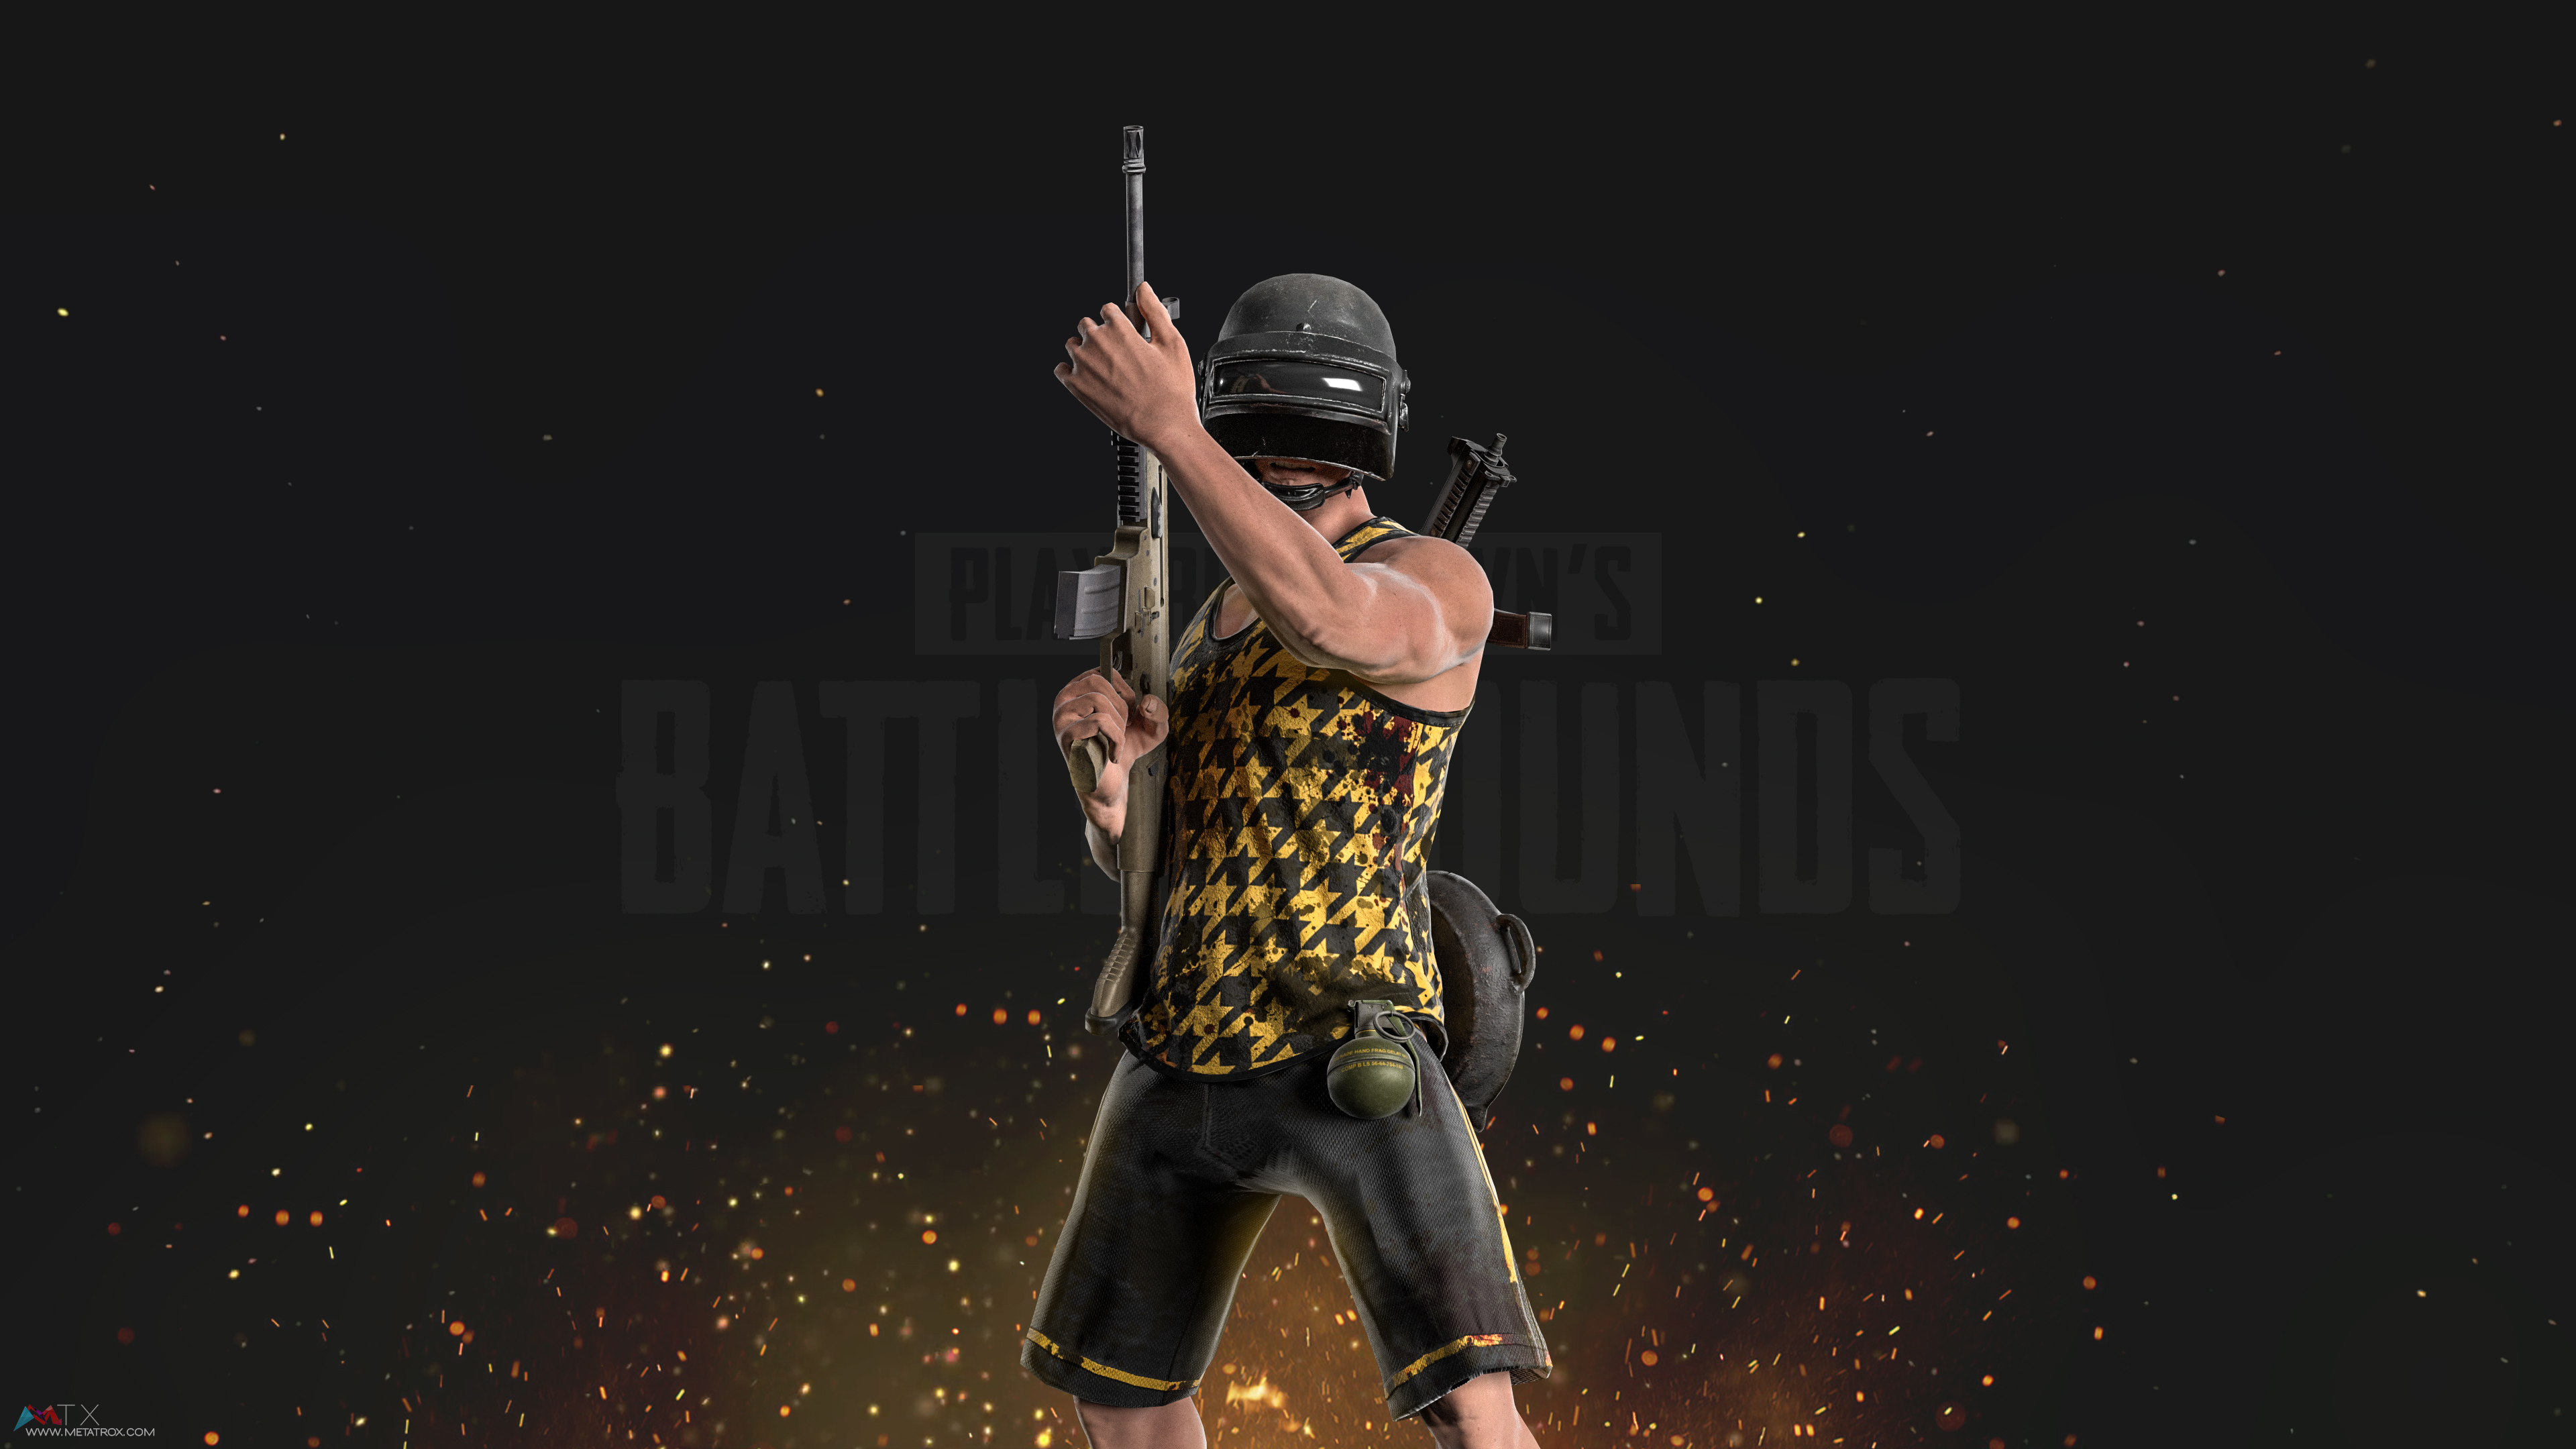 Www Pubg Hd Wallpapers Com: Pubg, HD Games, 4k Wallpapers, Images, Backgrounds, Photos